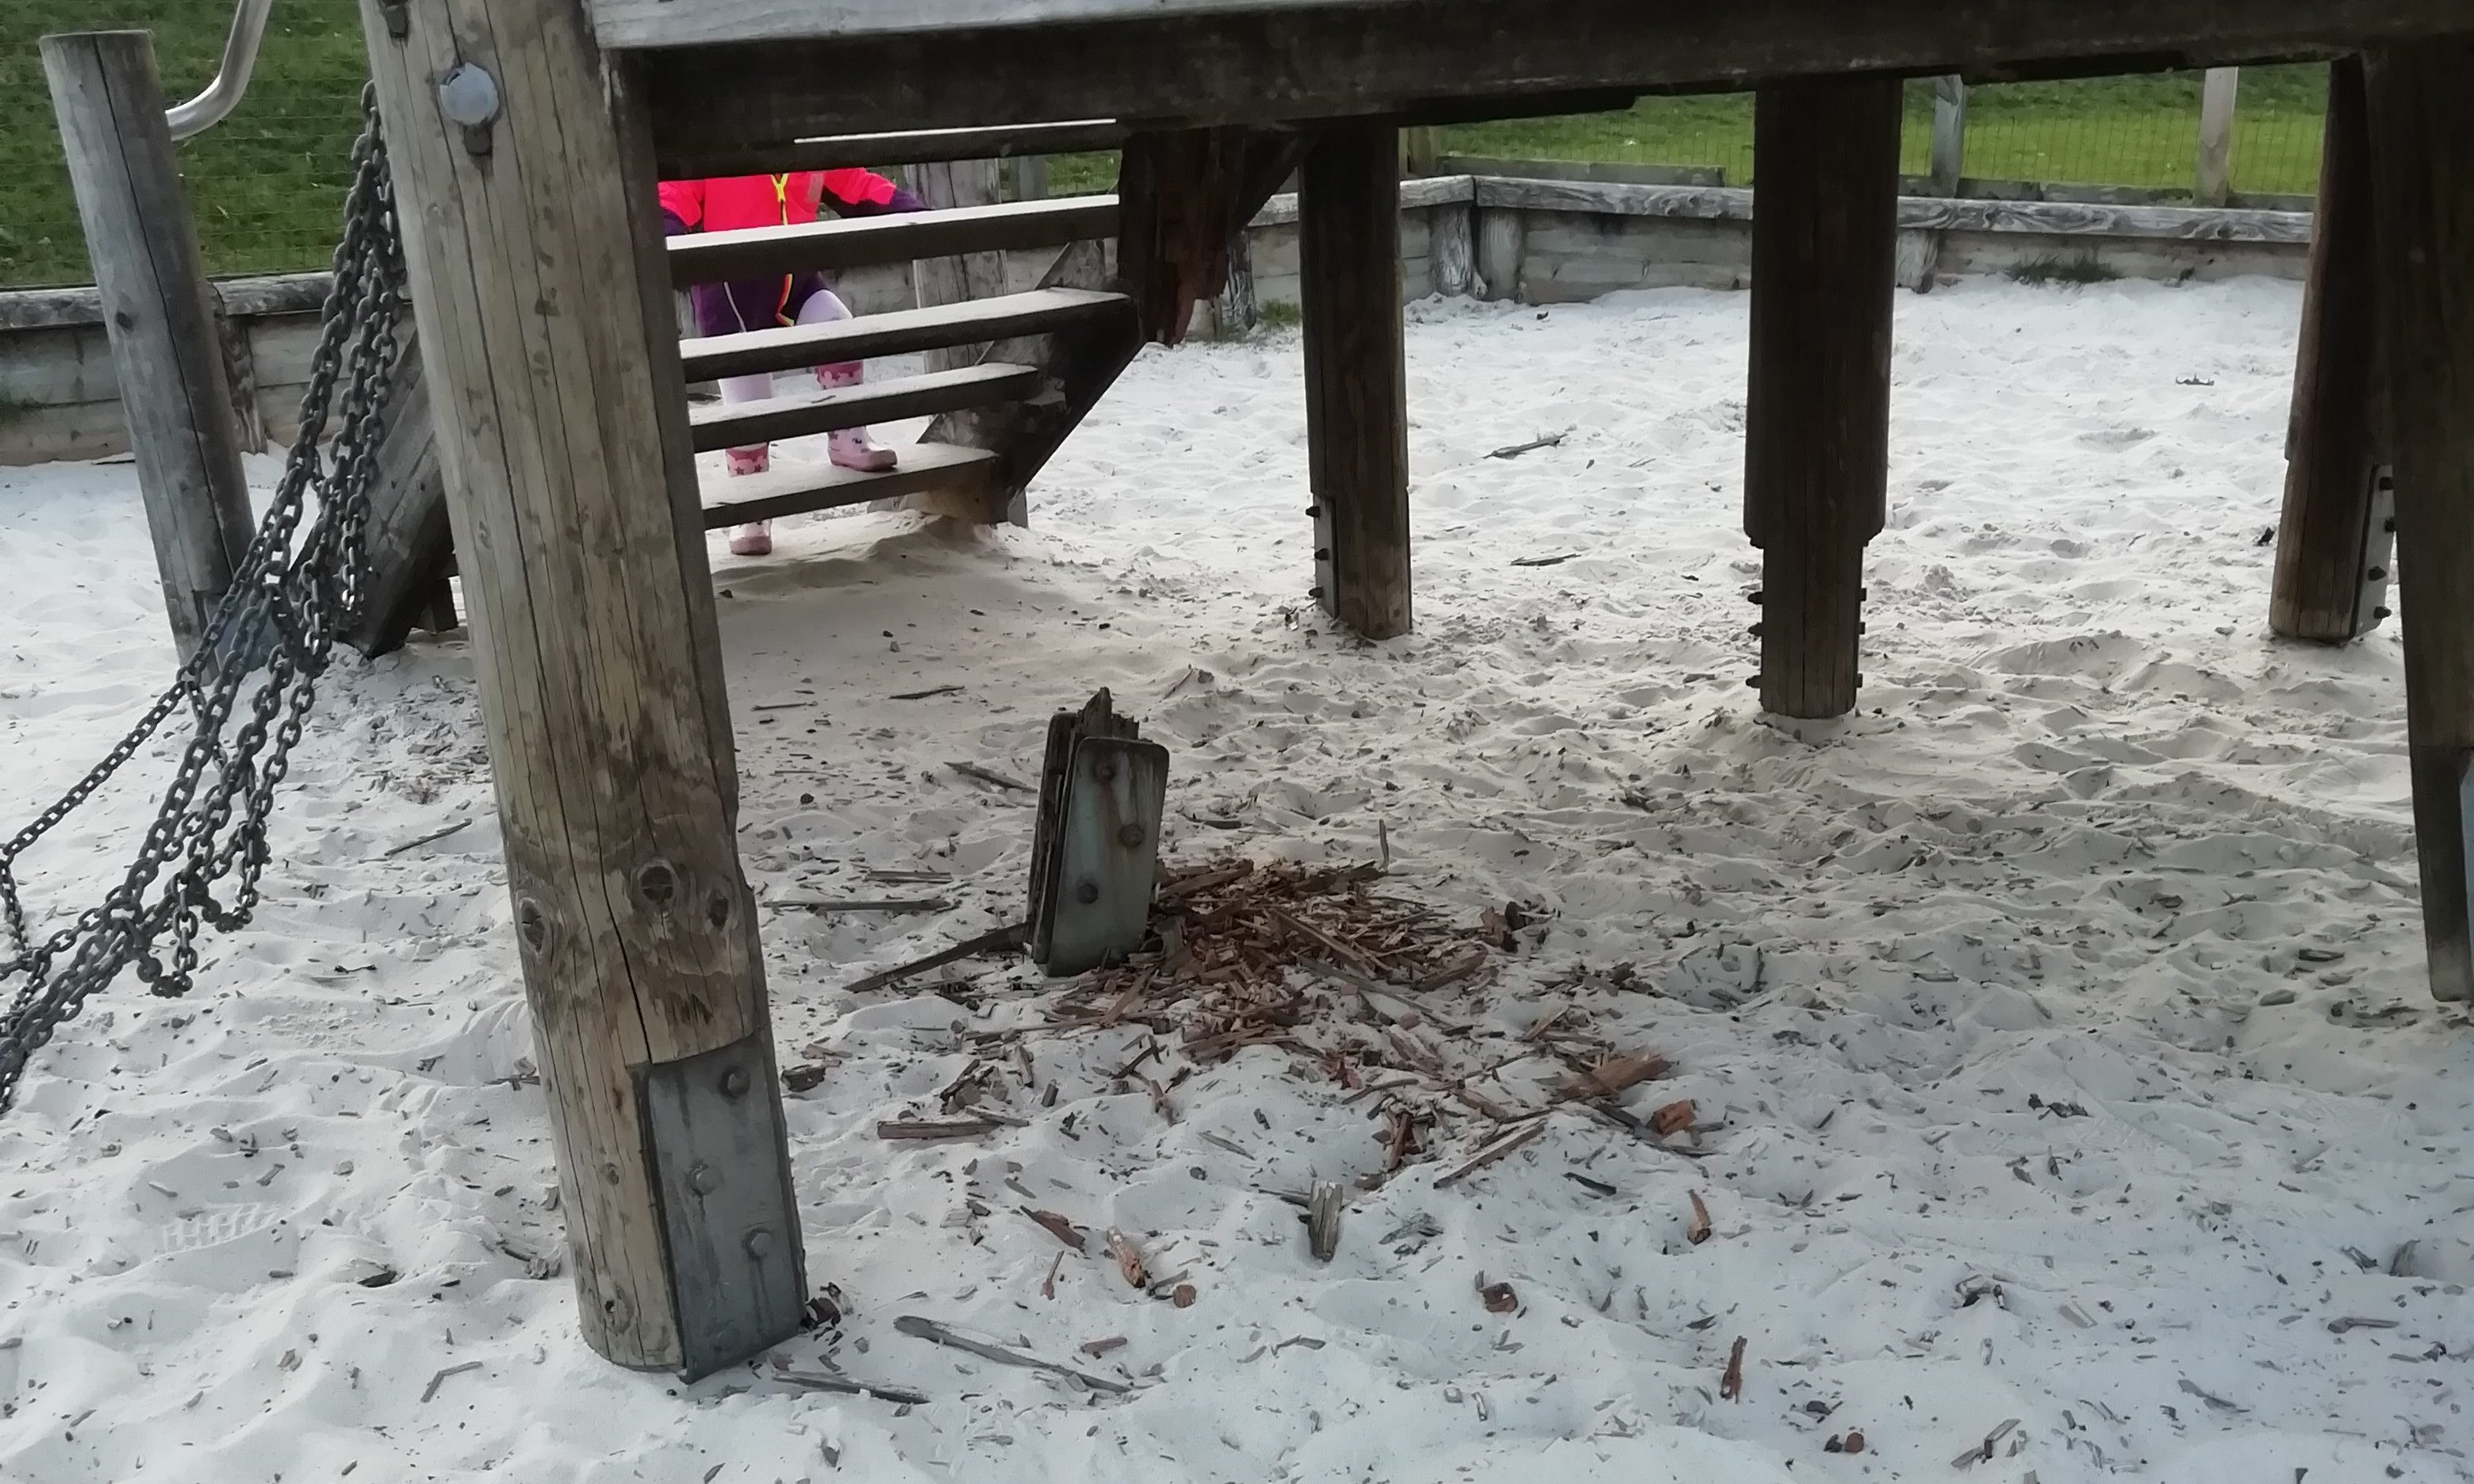 The rotten play equipment in the park